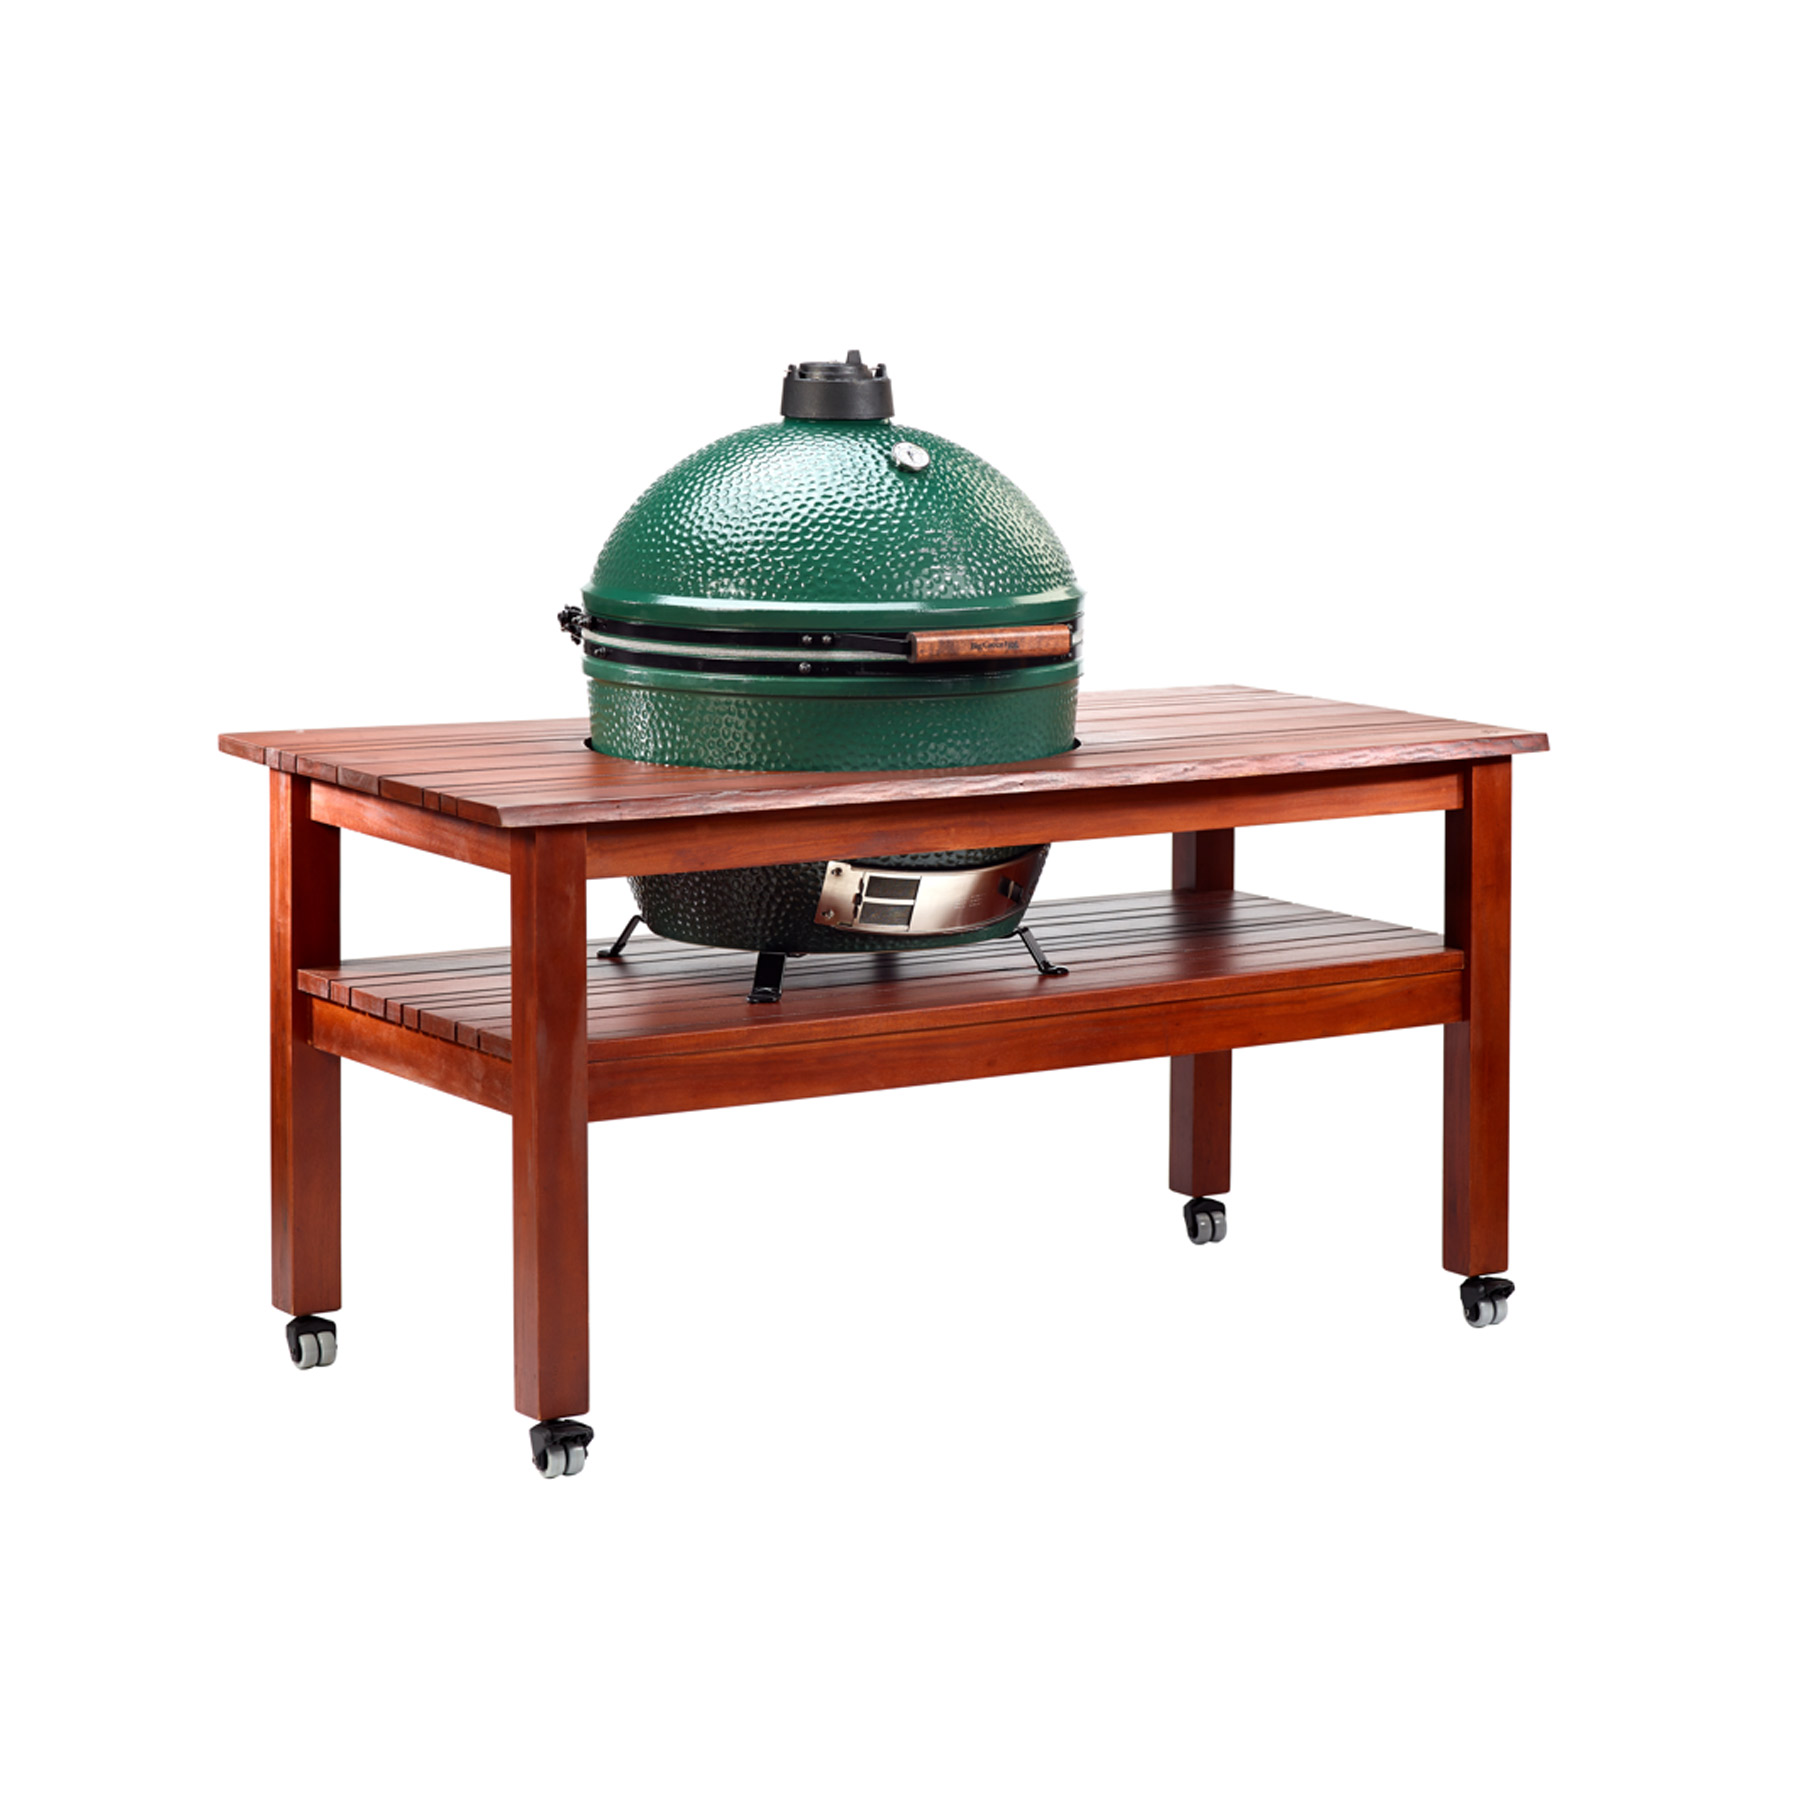 Charcoal Grills By Big Green Egg Marx Fireplaces Amp Lighting